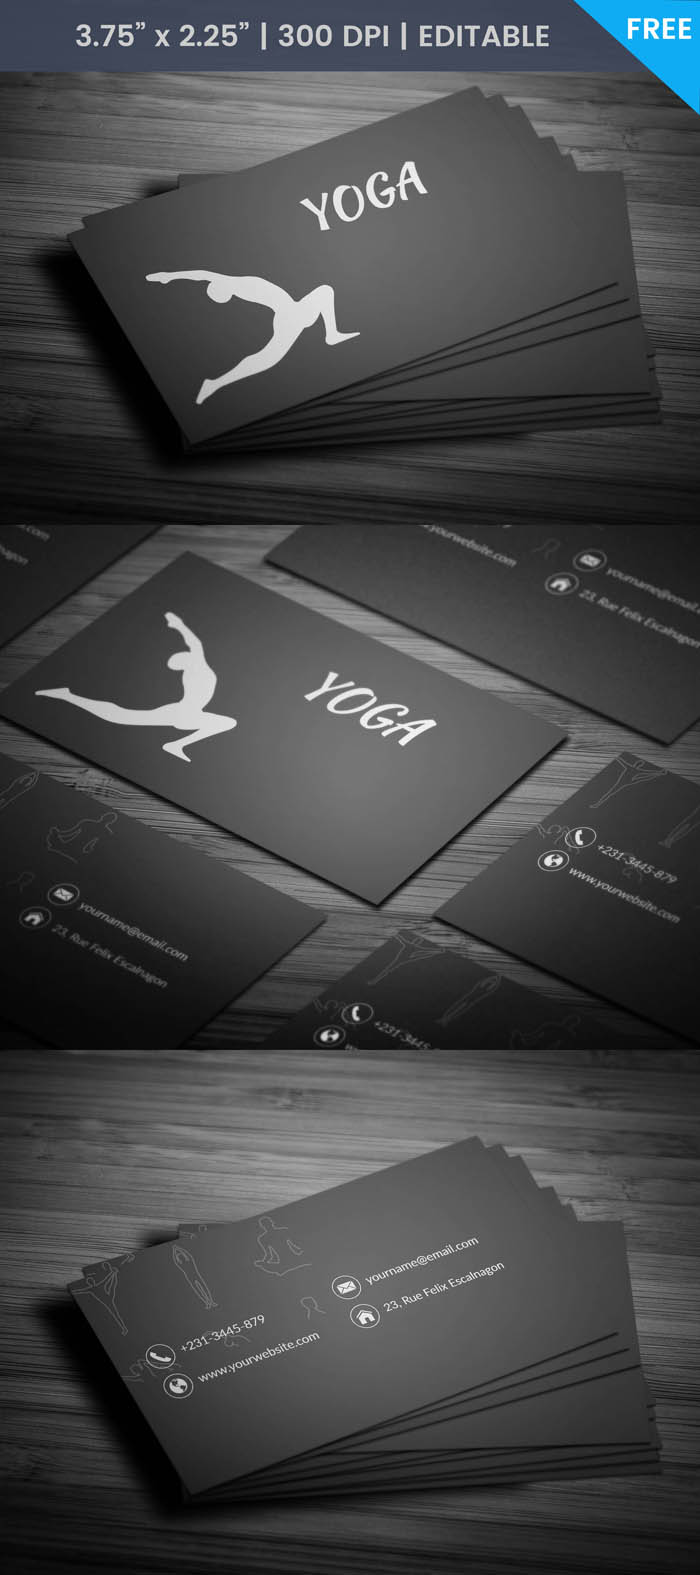 Free Yoga Studio Business Card Template